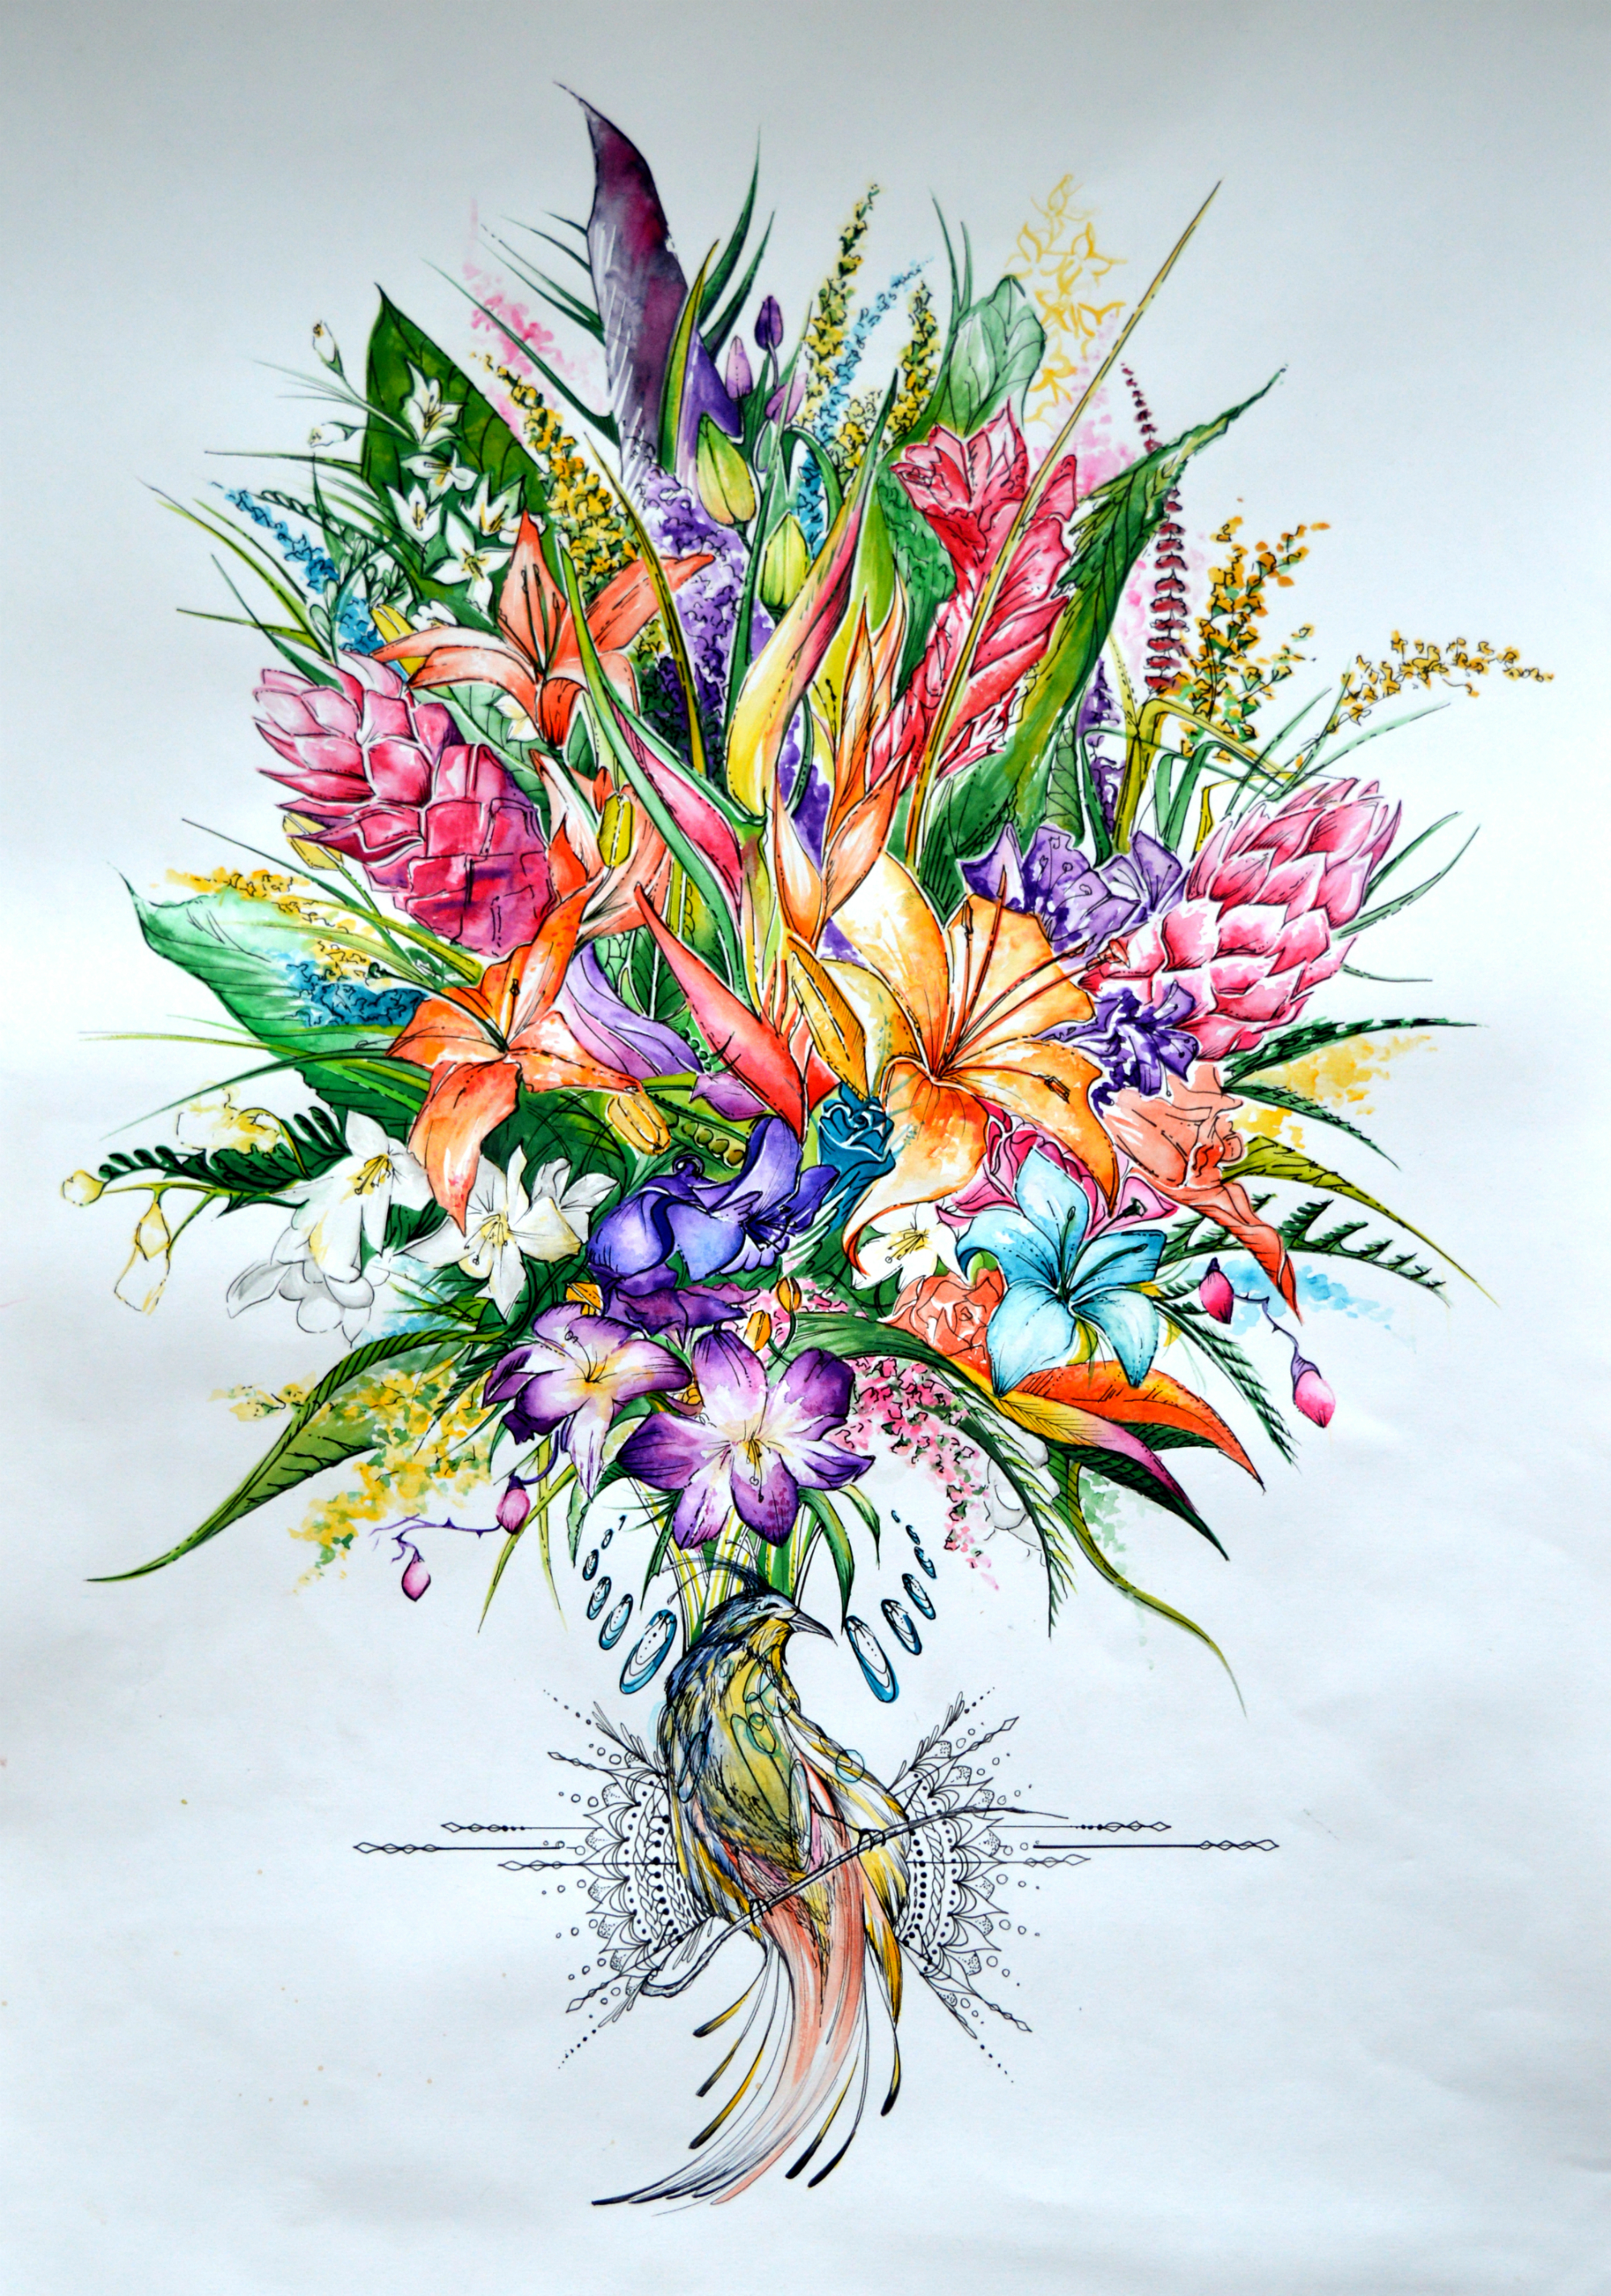 Bouquet painting by lushinnickii on DeviantArt